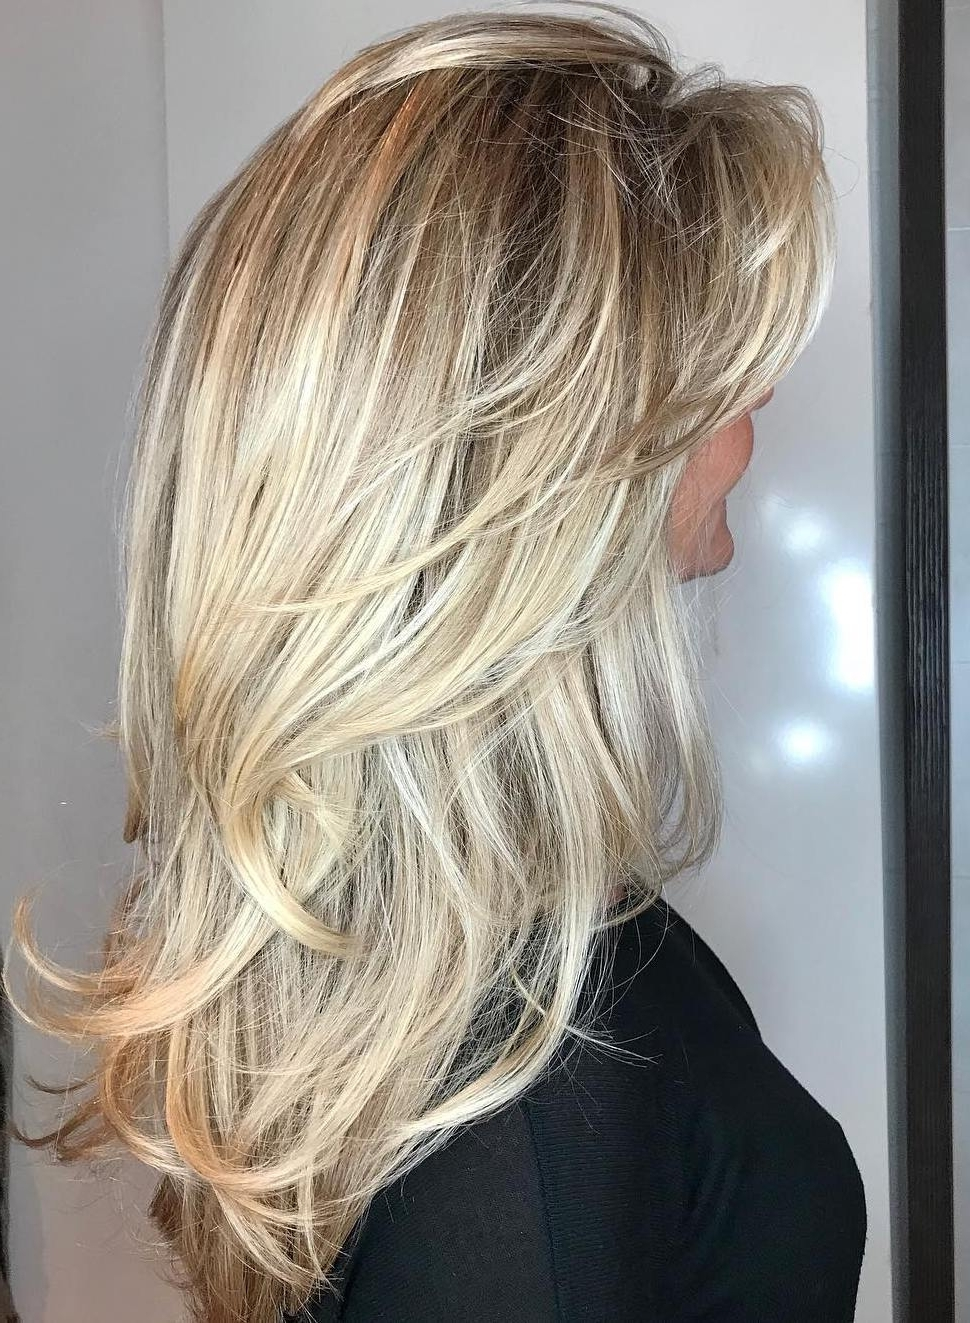 Best And Newest Multi Tonal Mid Length Blonde Hairstyles With Regard To 50 Cute Long Layered Haircuts With Bangs (View 11 of 20)